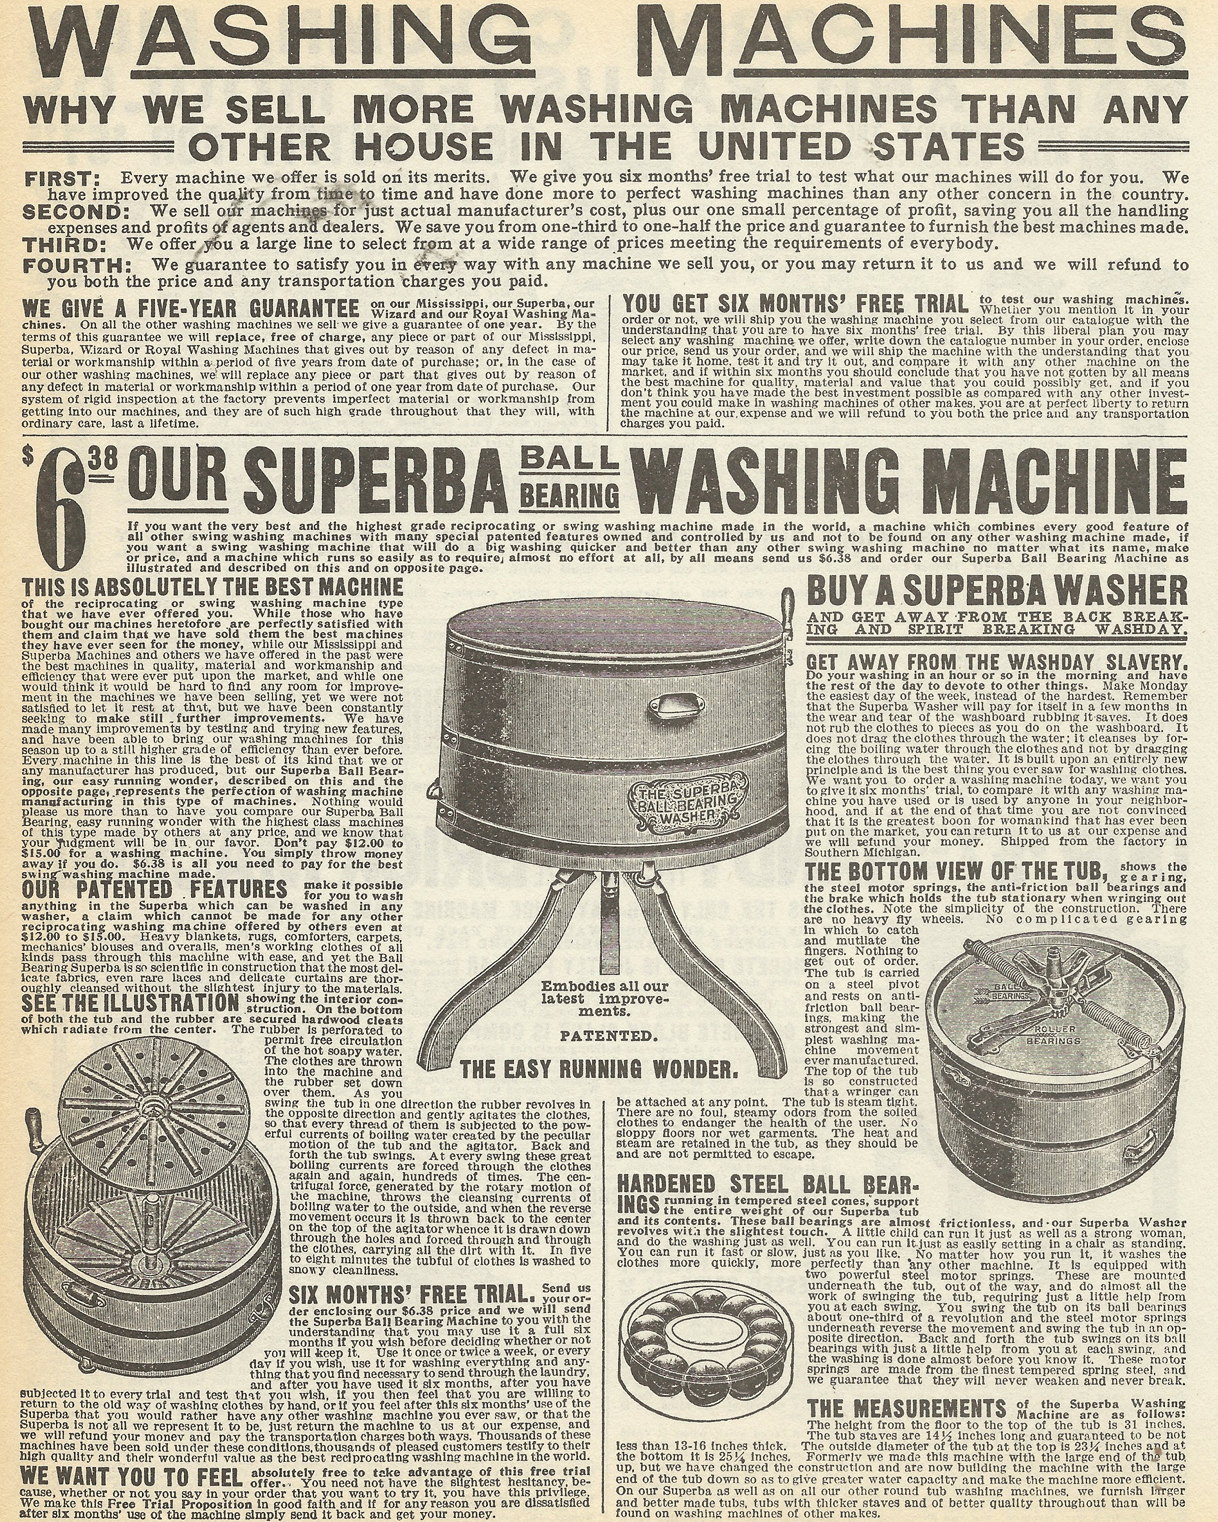 Better Homes And Gardens Granary Modern Farmhouse Printers Tv Cabinet 96 43 Vintage Washing Machine Ad Old Washing Machine